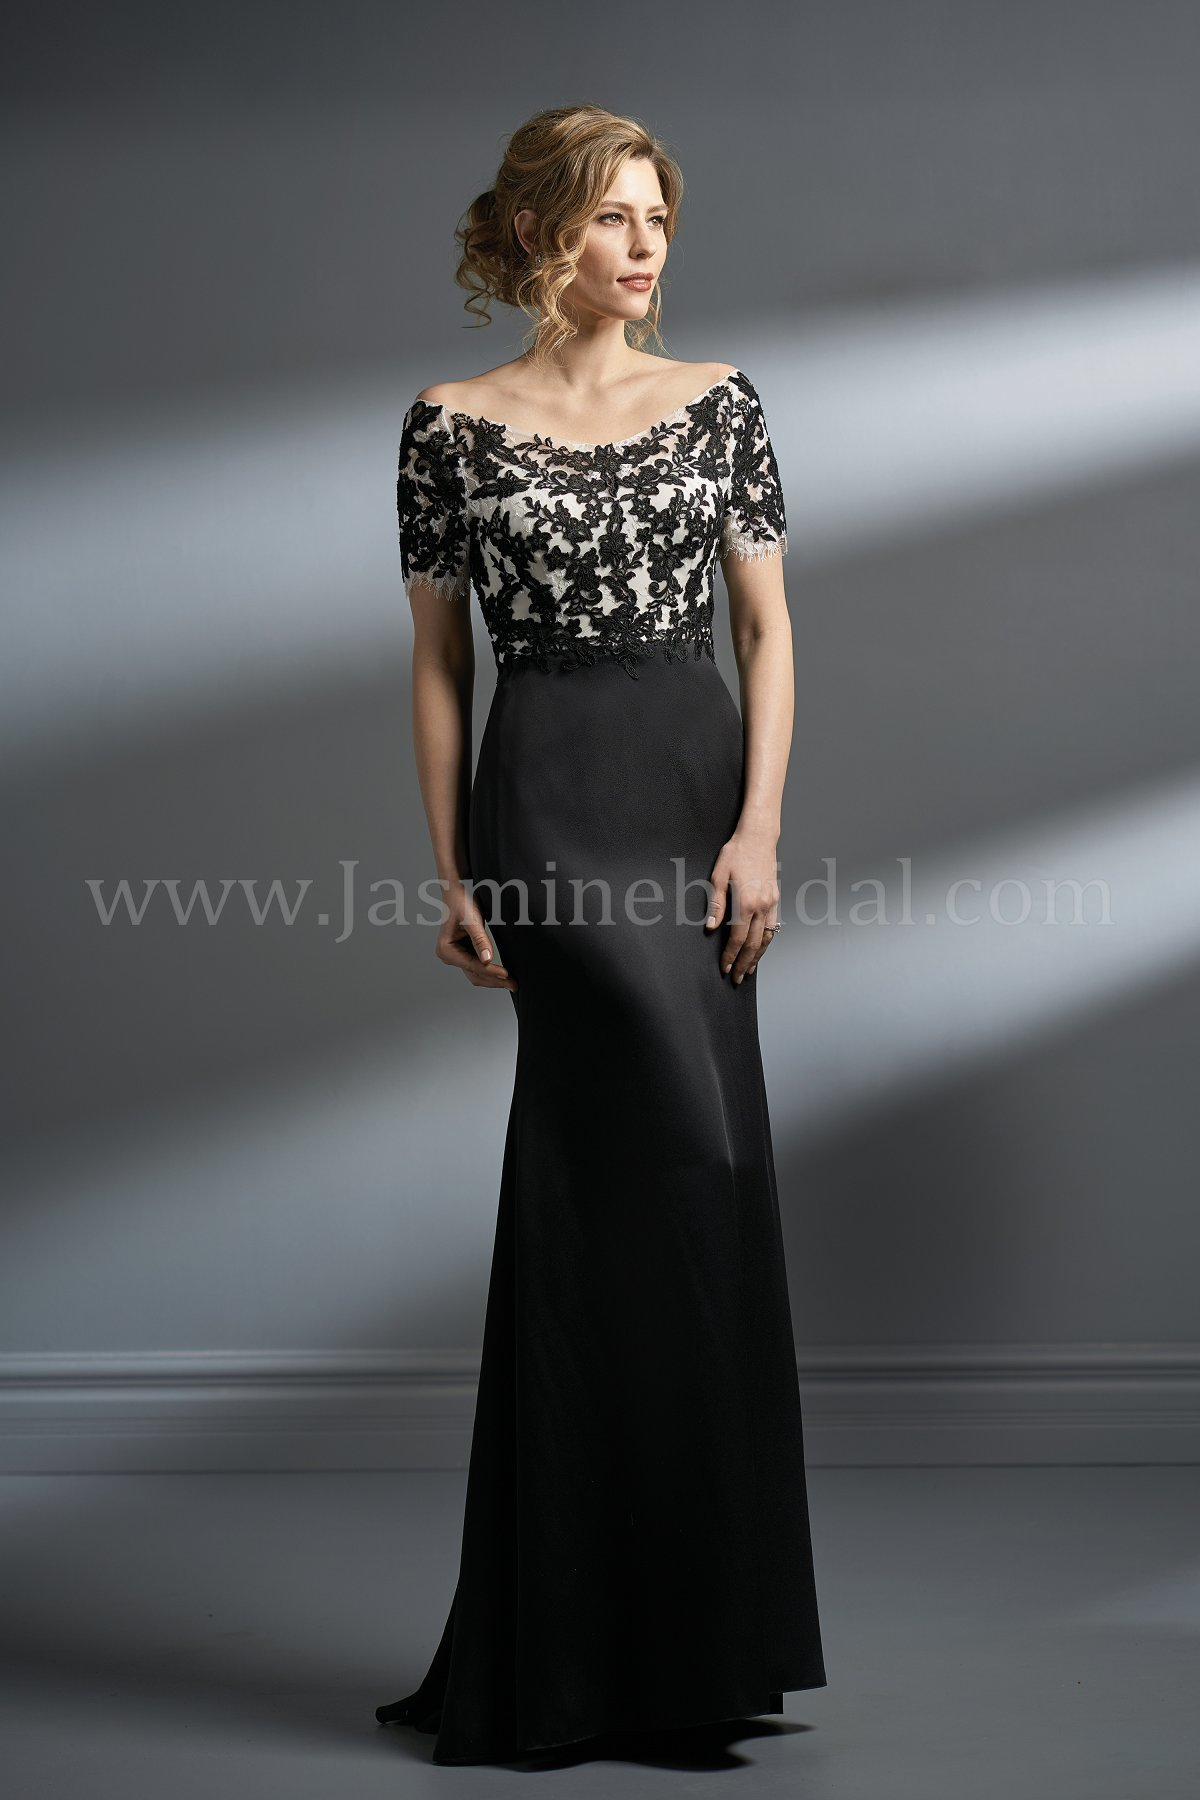 mother-of-the-bride-dresses-K198051-F